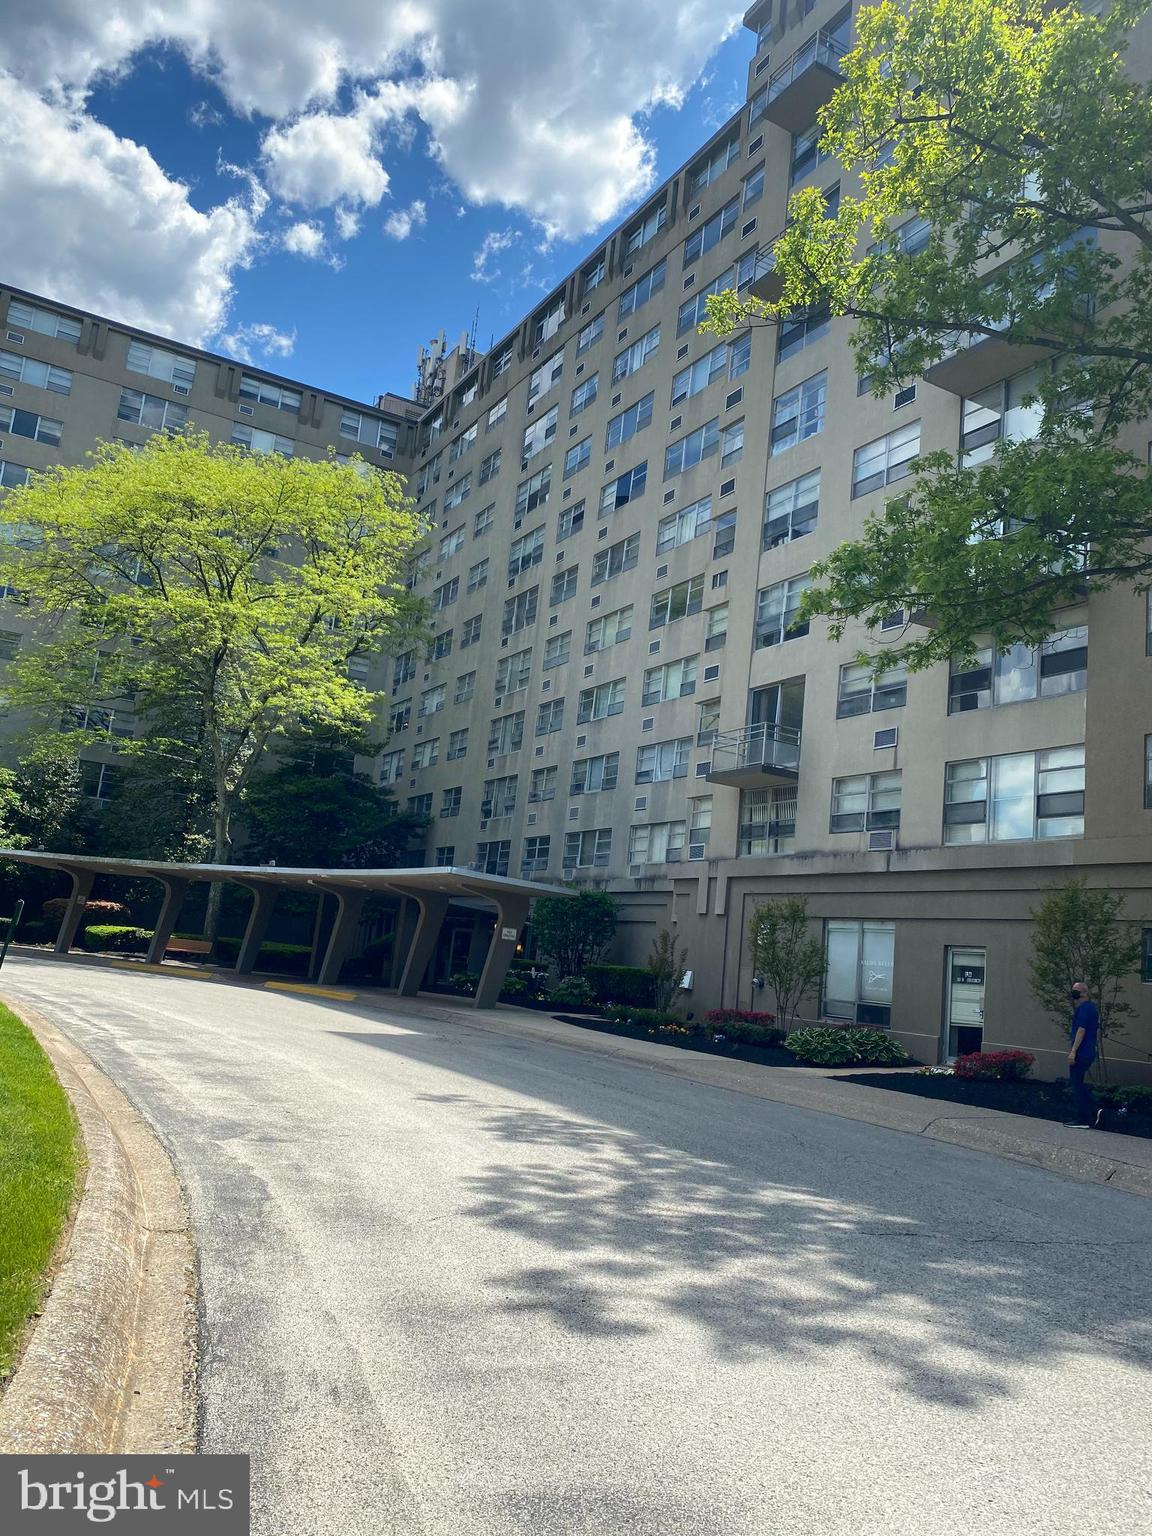 This one bed/one bath on 4th floor  at Radnor House condominium is at great location,  award-winning Radnor school district. It has 24 hour secure monitored lobby entry,  a large common laundry in the basement along with a storage bin for each unit. The convenient location features a short walk to the Rosemont station of the R5 train line and a 4 mile ample parking.Tenalt has lease until 8/31/2022, rent is $1100/month.